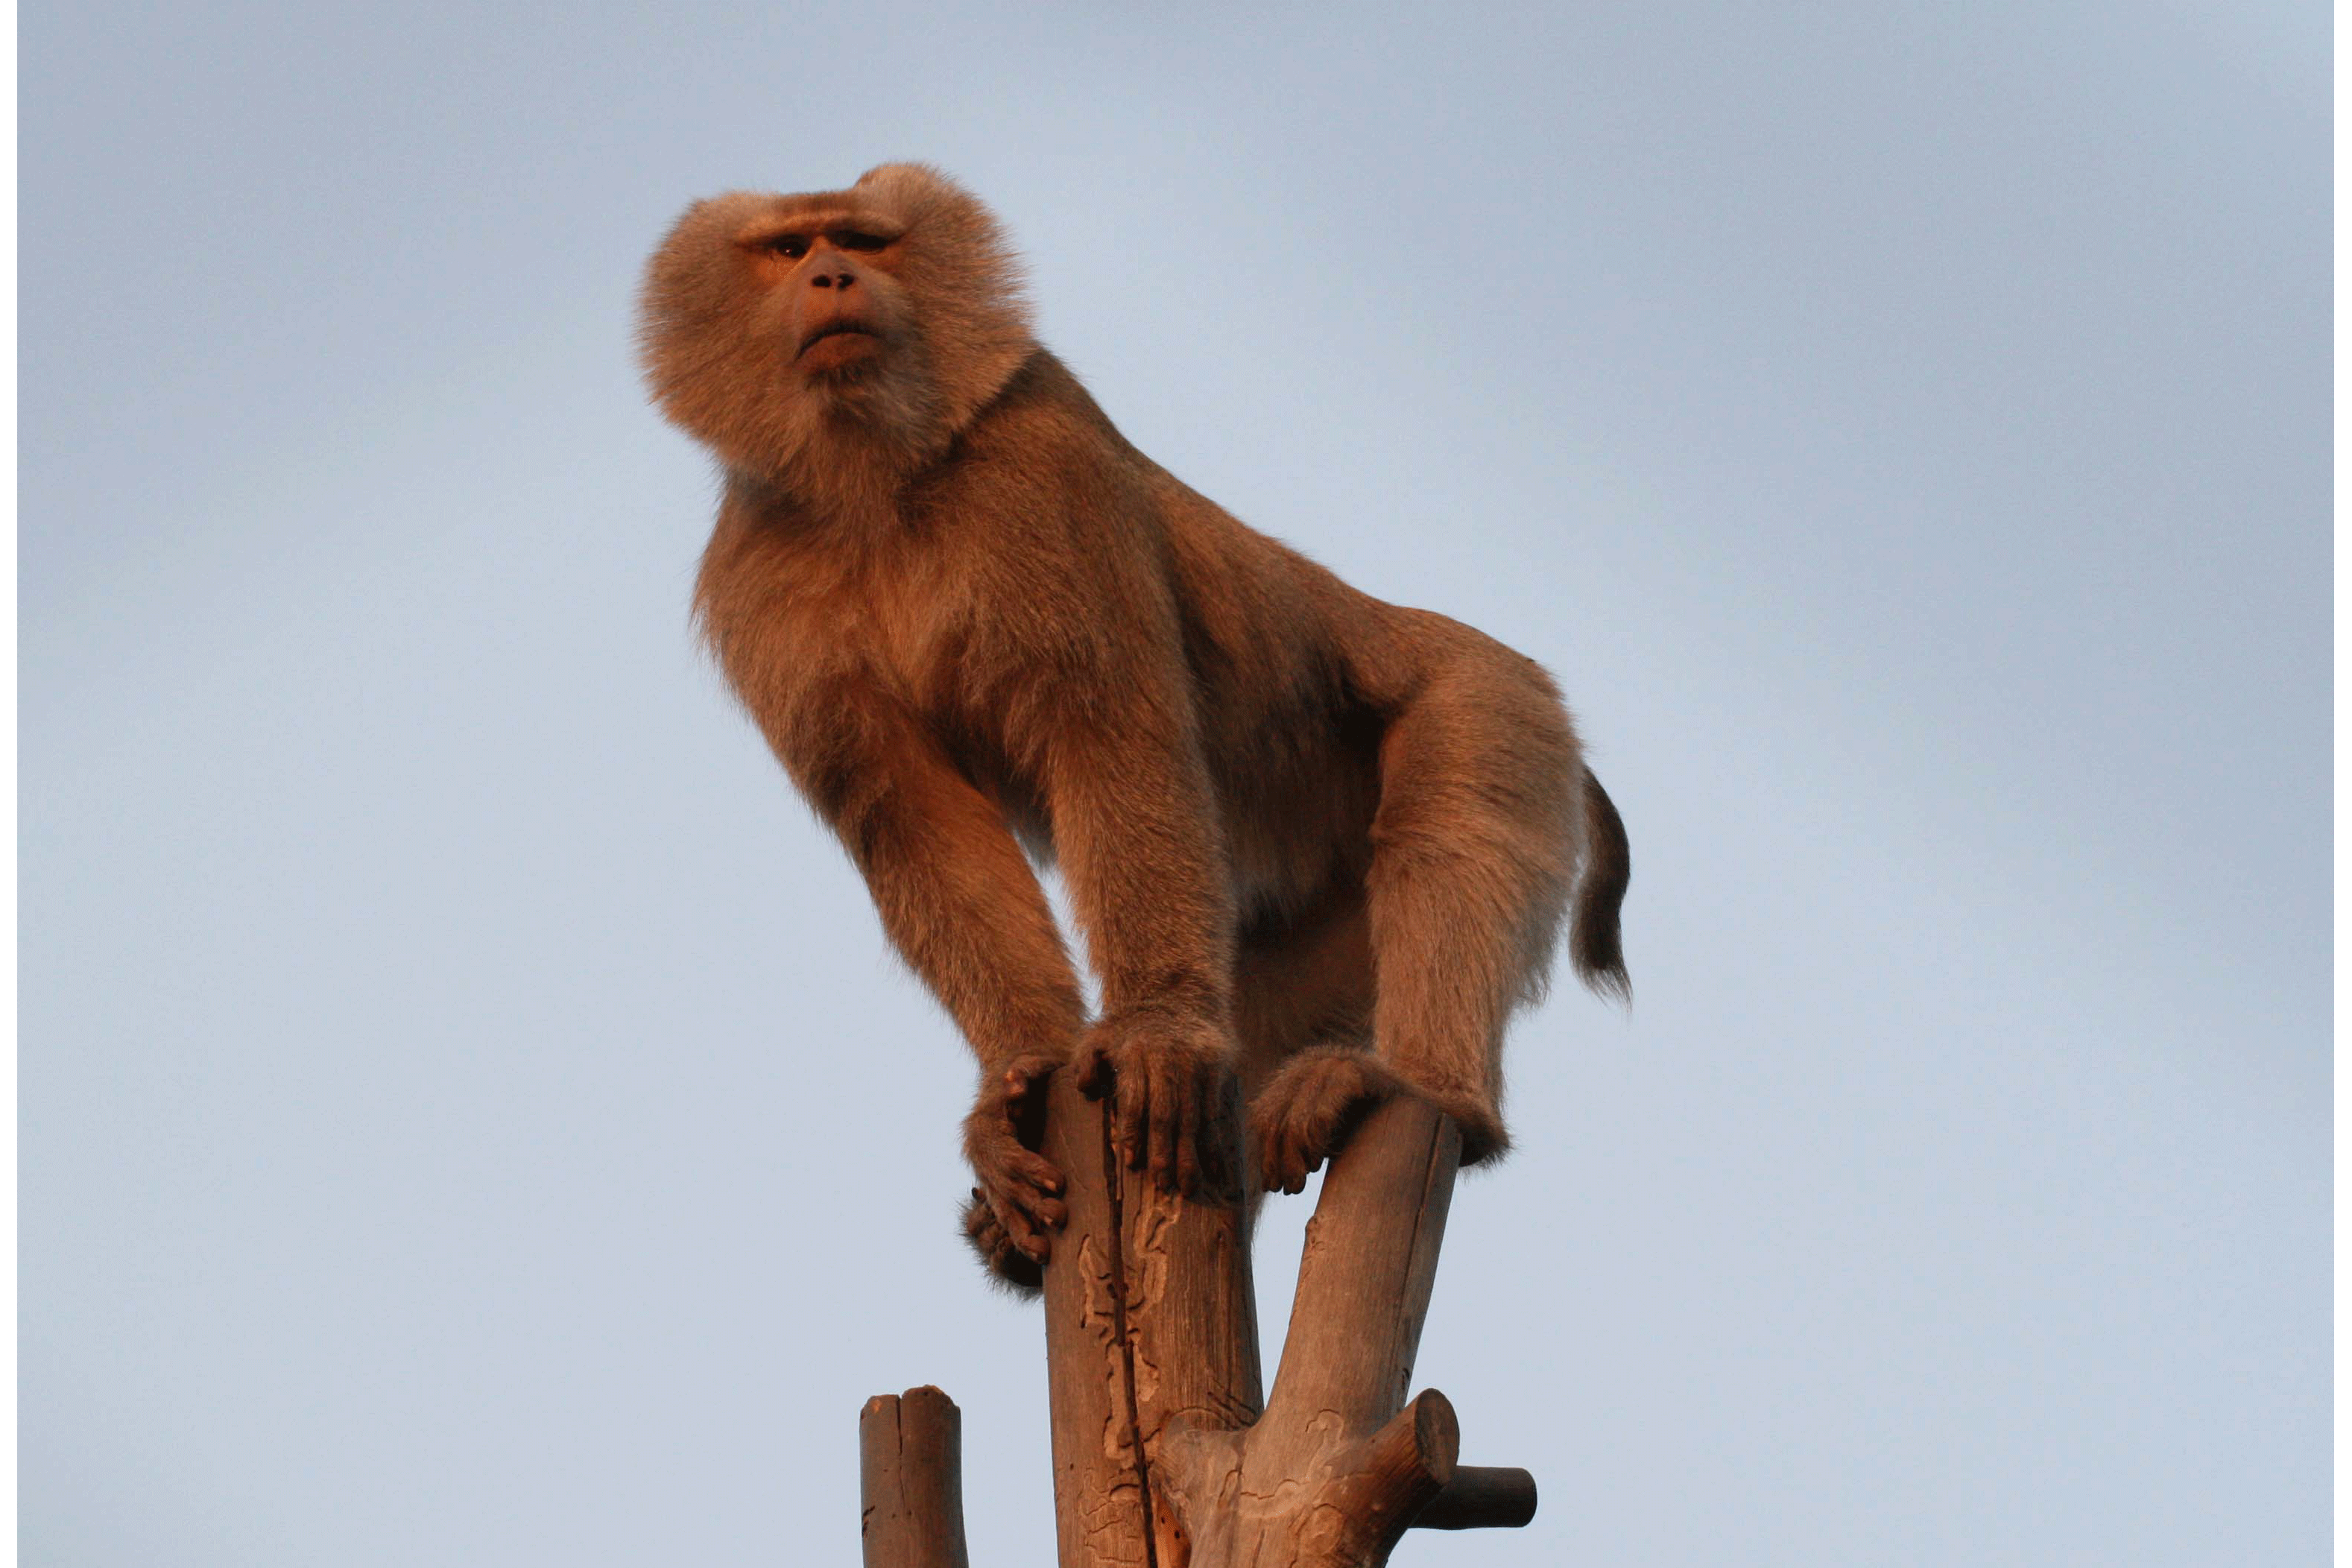 Chevrolet—northern Pig Tailed Macaque (Macaca Leonina)a